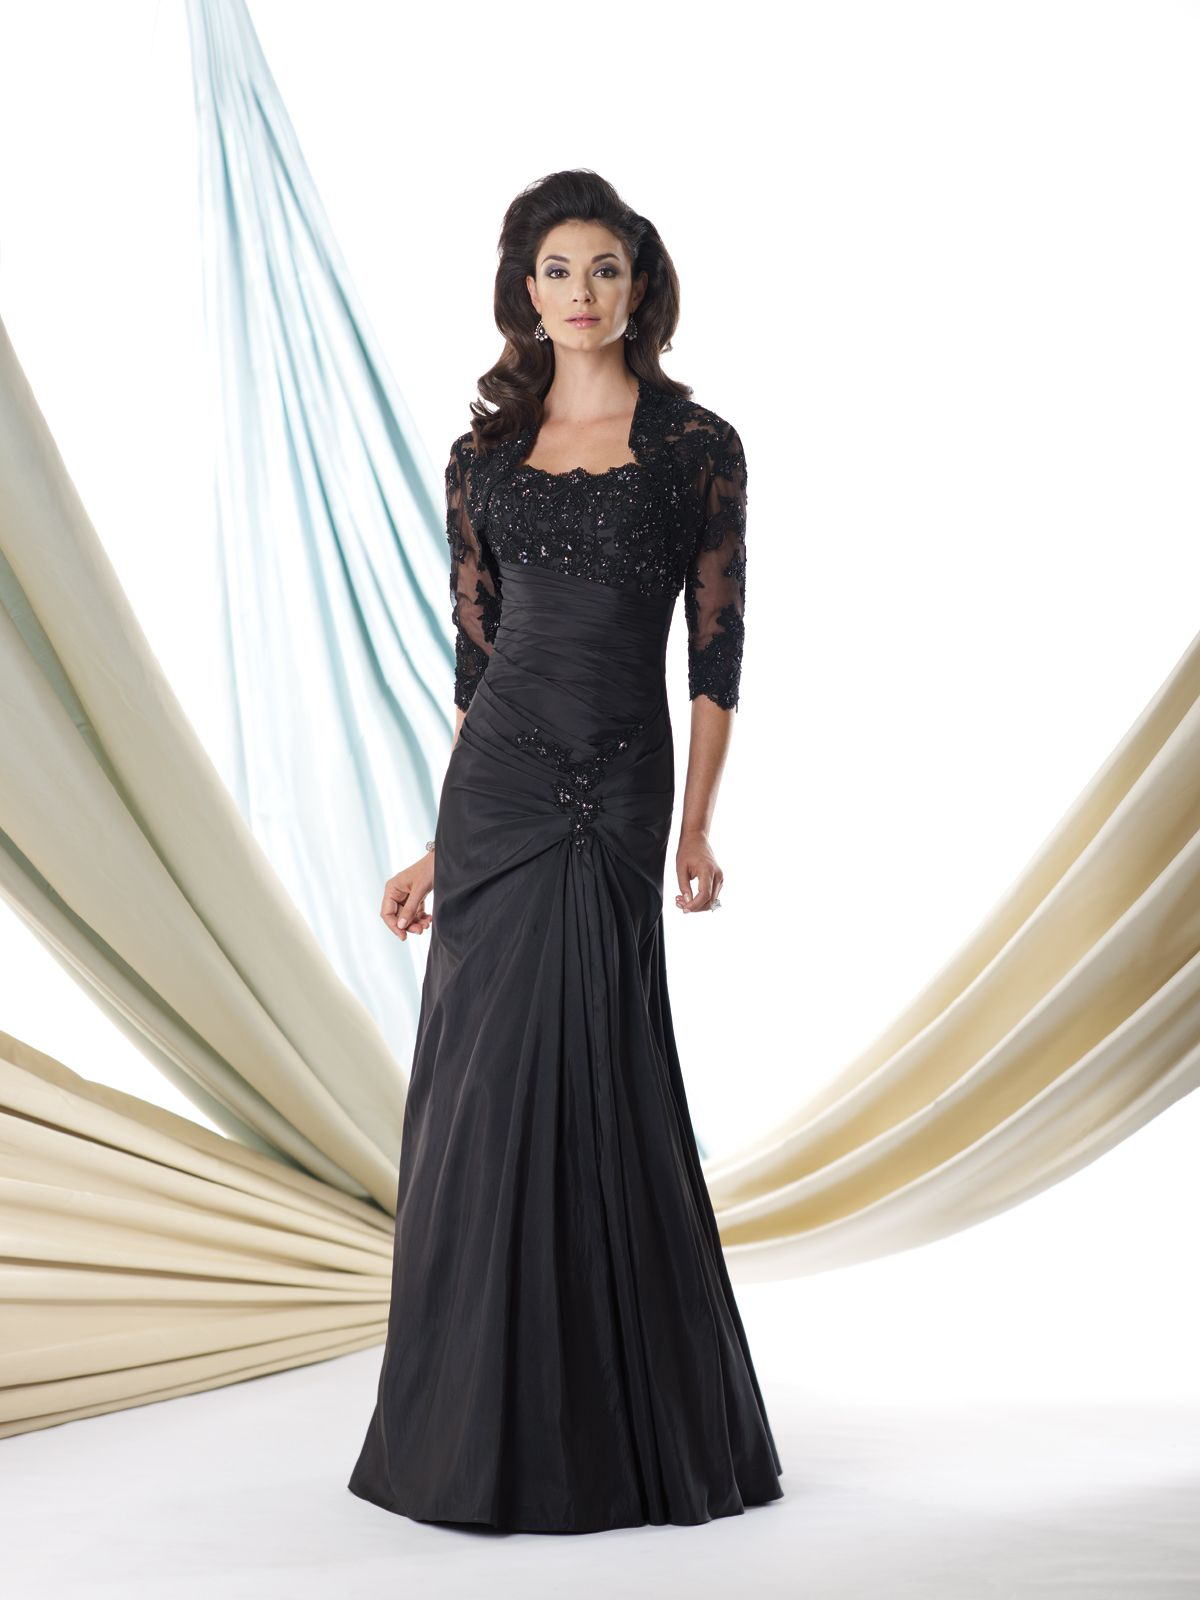 Sophisticated Mother of the Bride Dresses 2019 by Mon